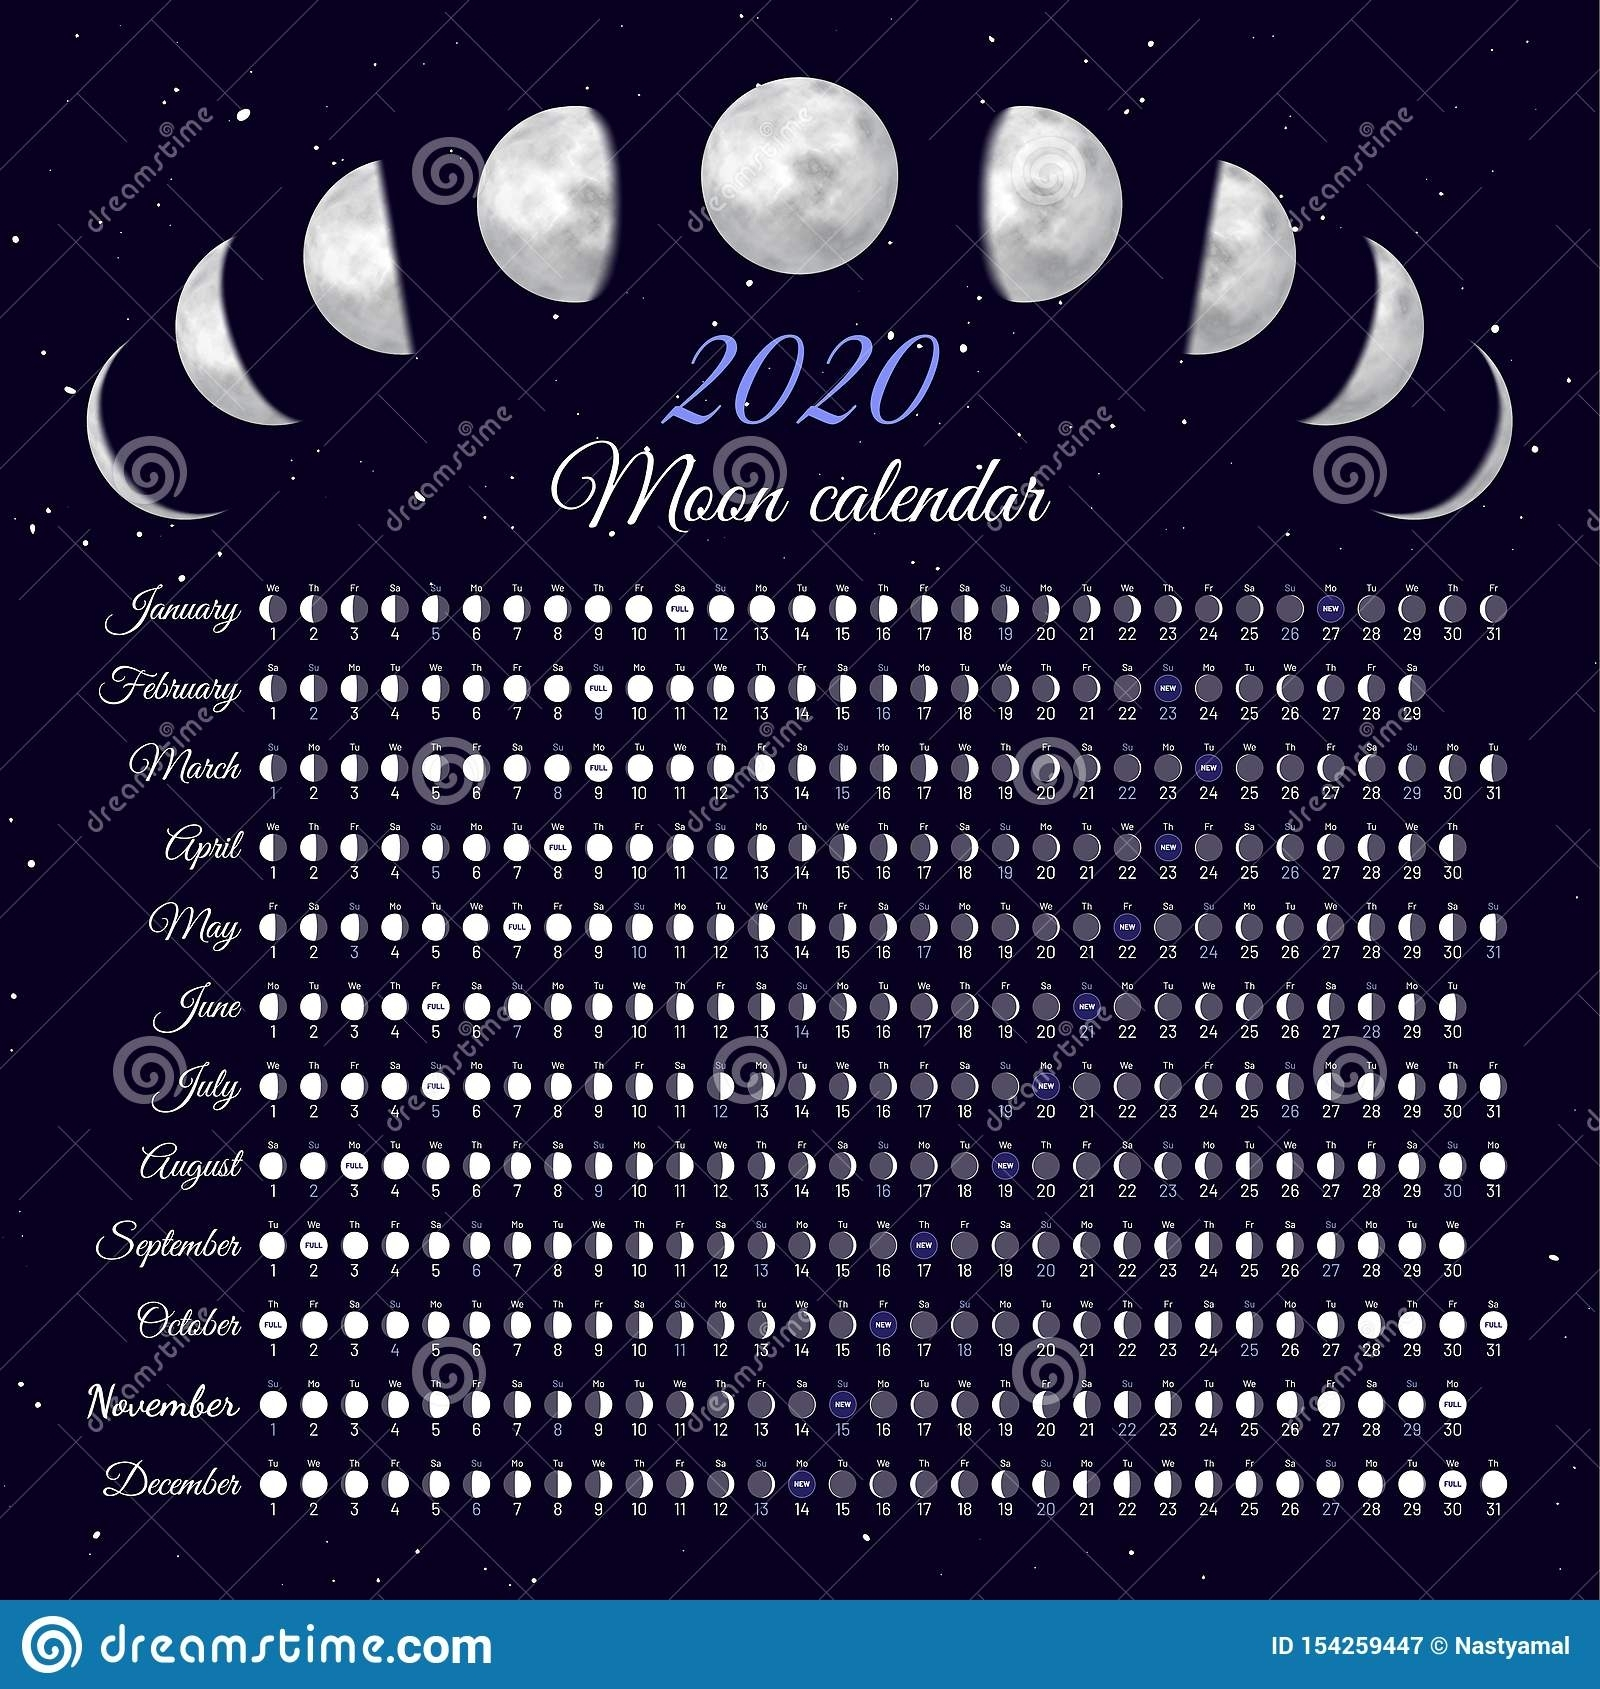 Lunar Cycles At 2020 Year. Stock Vector. Illustration Of